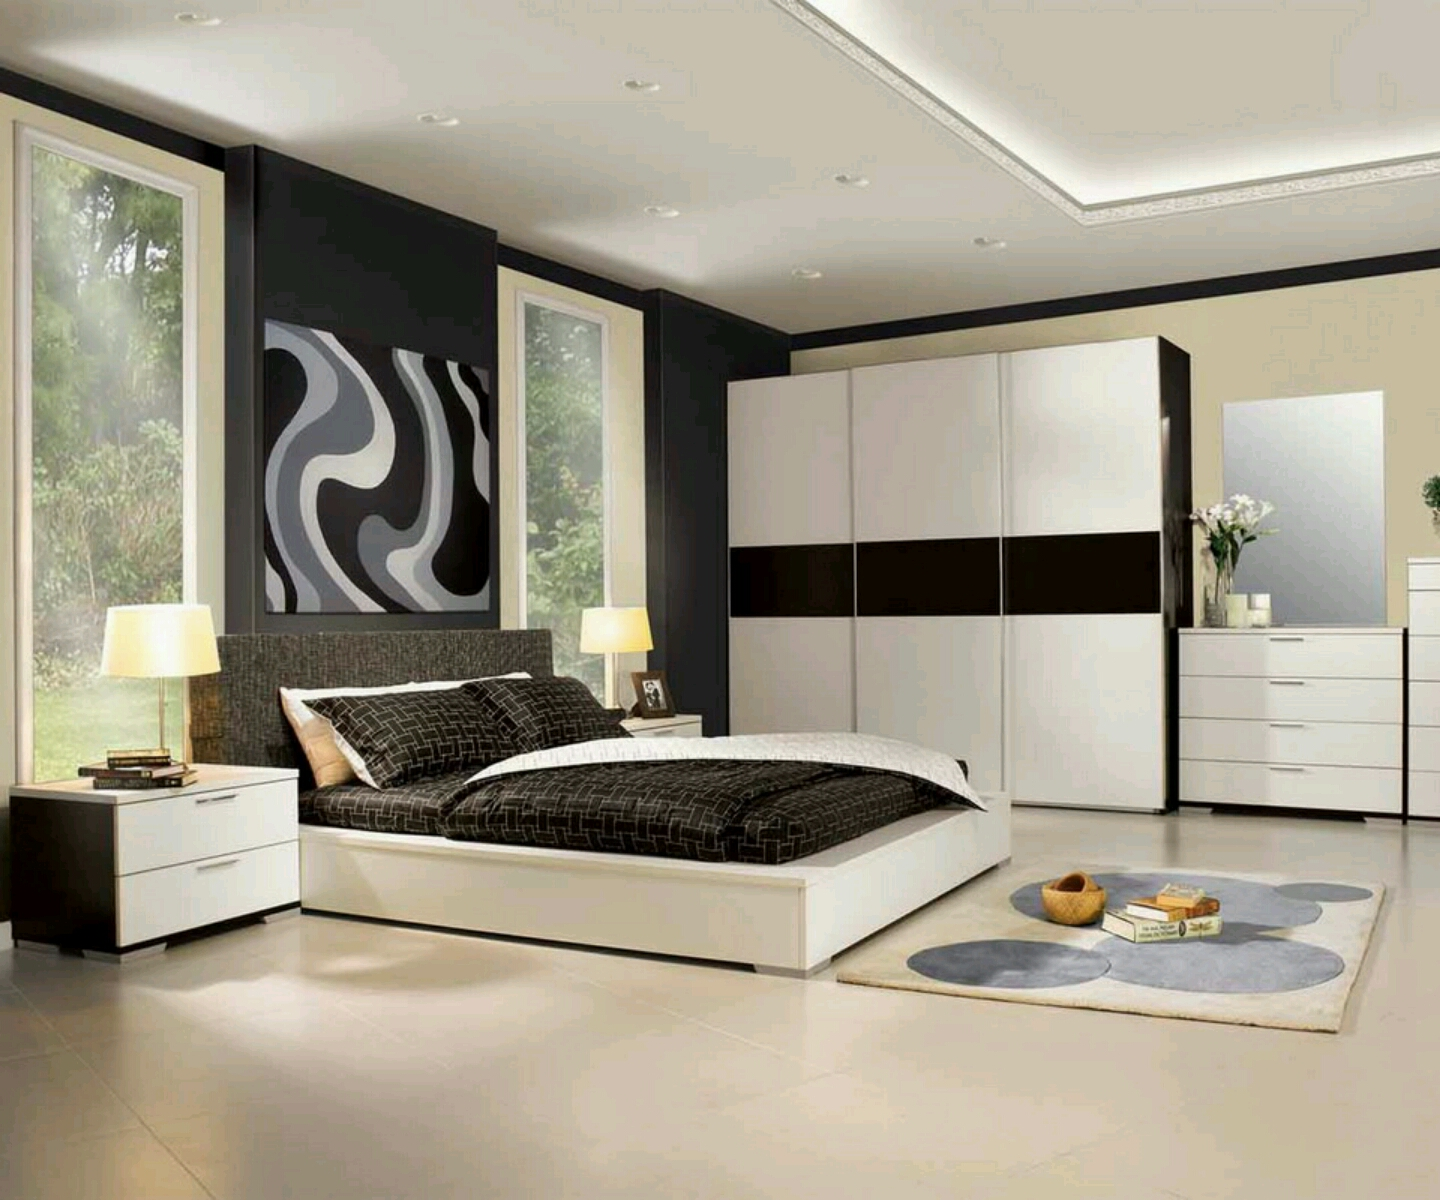 Modern luxury bedroom furniture designs ideas vintage for Bed design ideas furniture